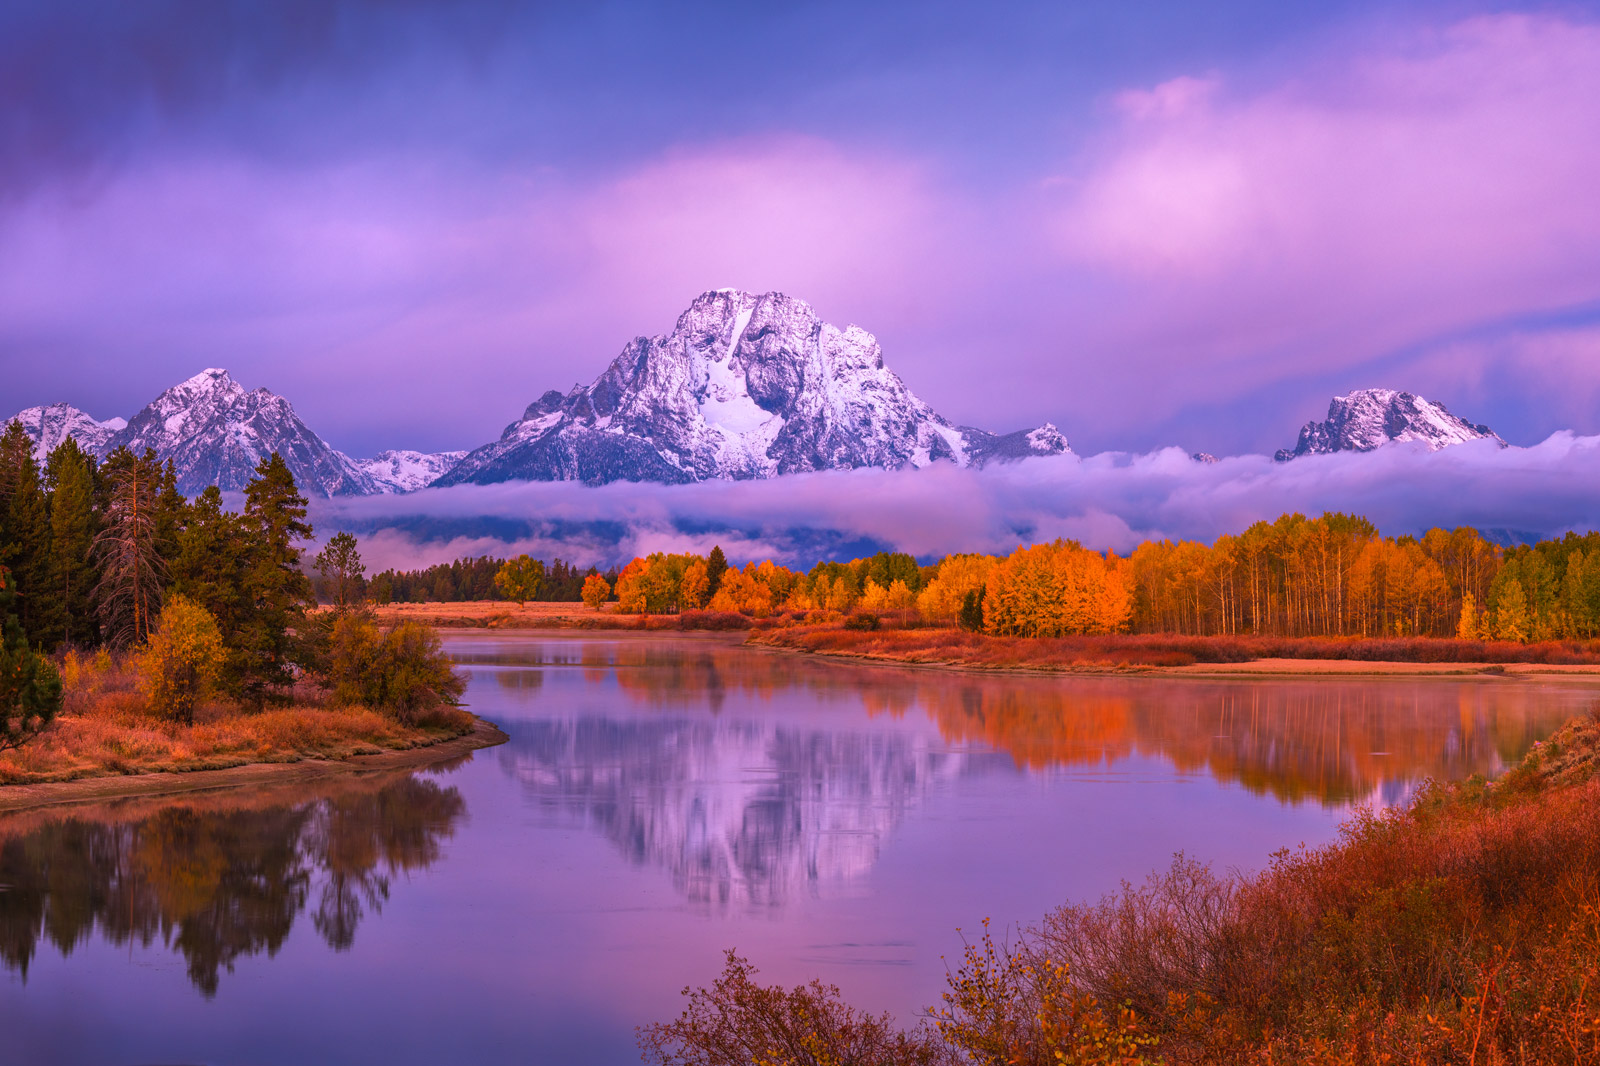 Wyoming, Grand Teton, National Park, Fall, Color, Snowstorm, Mountains, Oxbow Bend, Snake River, limited edition, photograph, fine art, landscape, photo